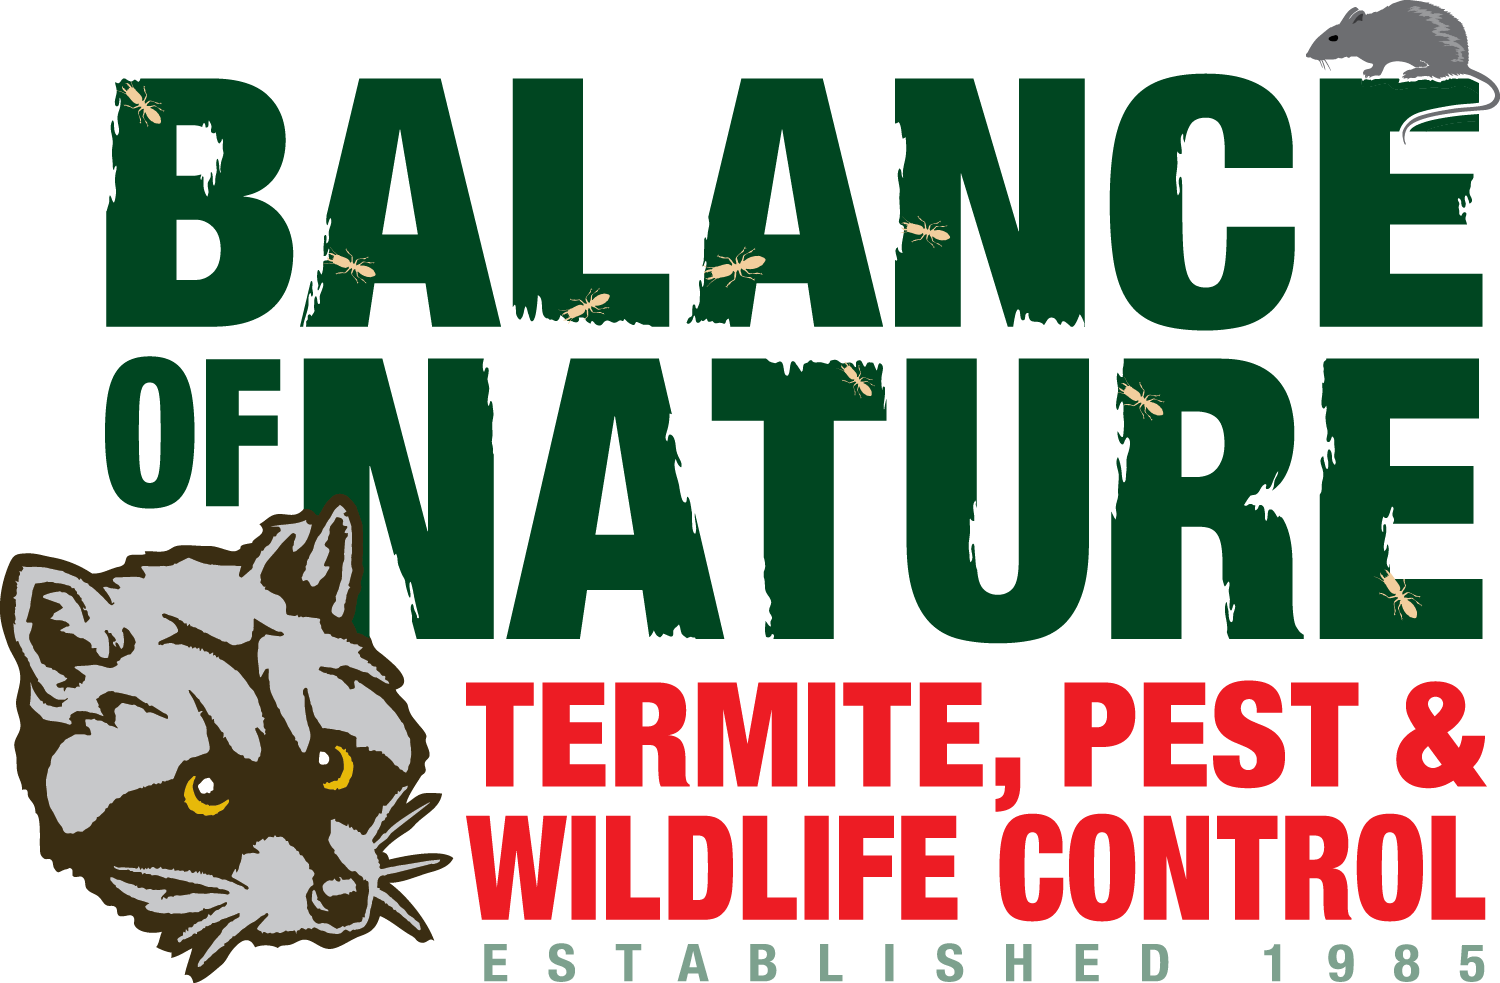 Pest Control Wildlife Removal In Nj Balance Of Nature